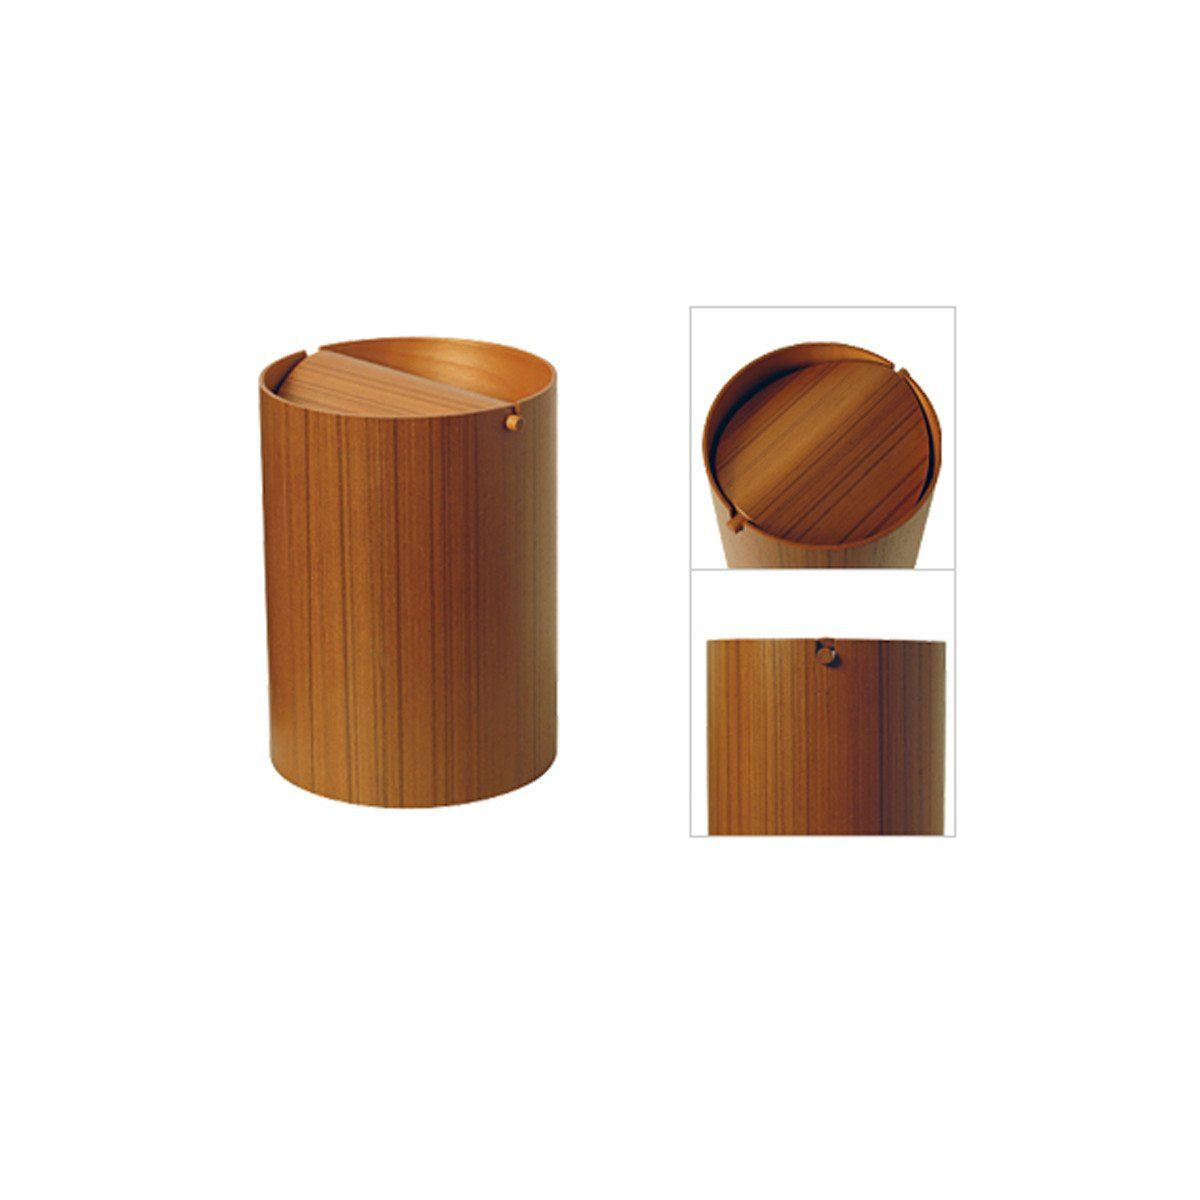 Wooden Wastebasket Garbage Receptacle  Wastebasket With Lid  Mirrored Wastebasket